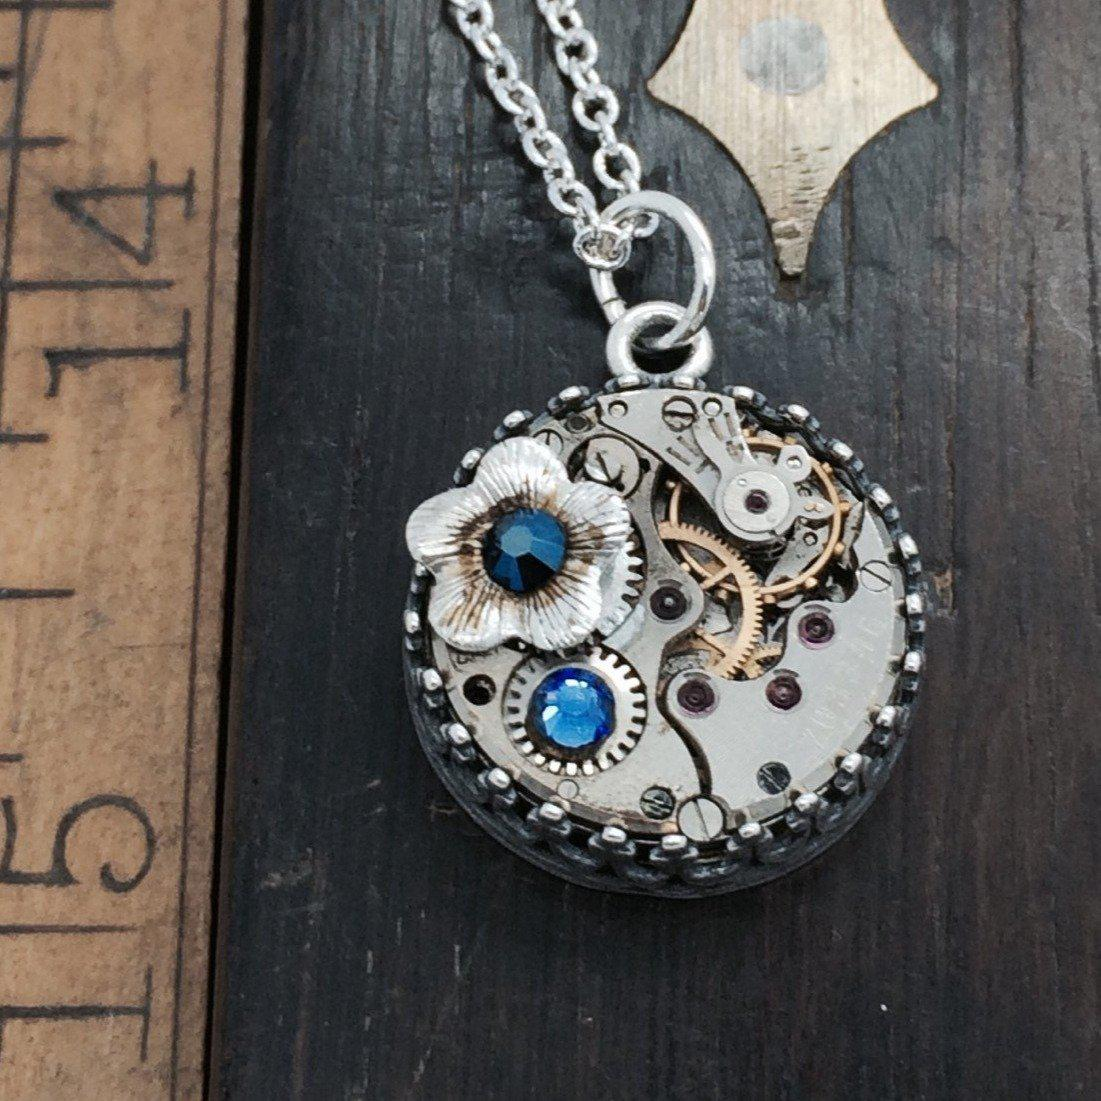 Steampunk Inspired Birthstone Watch Movement Necklace with Flower Charm - The Victorian Magpie